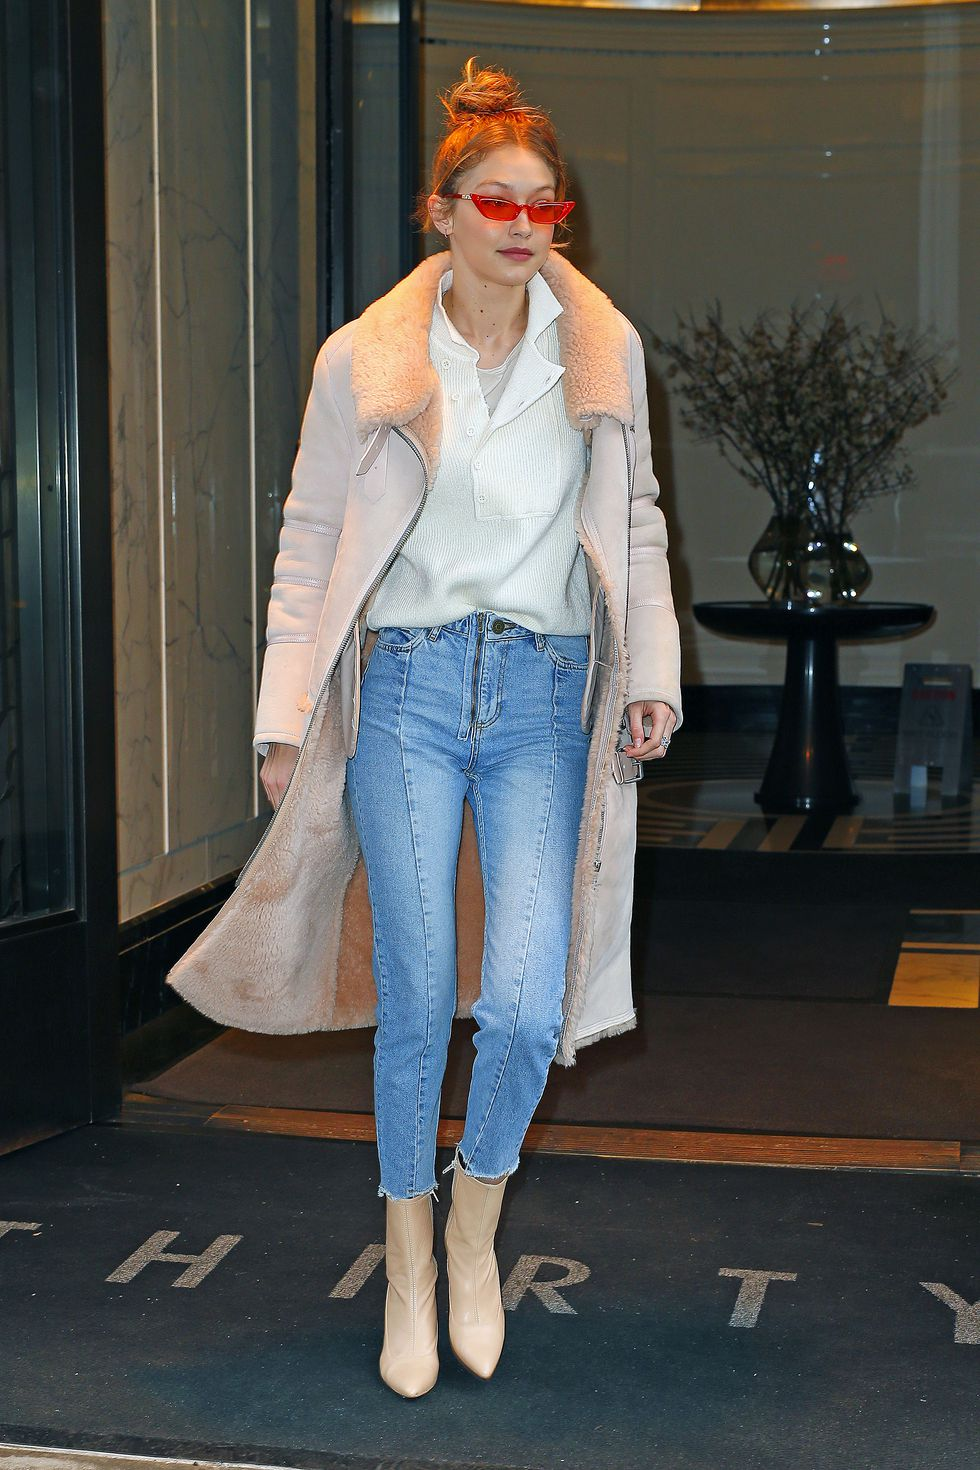 Missguided Gigi Hadid Denim